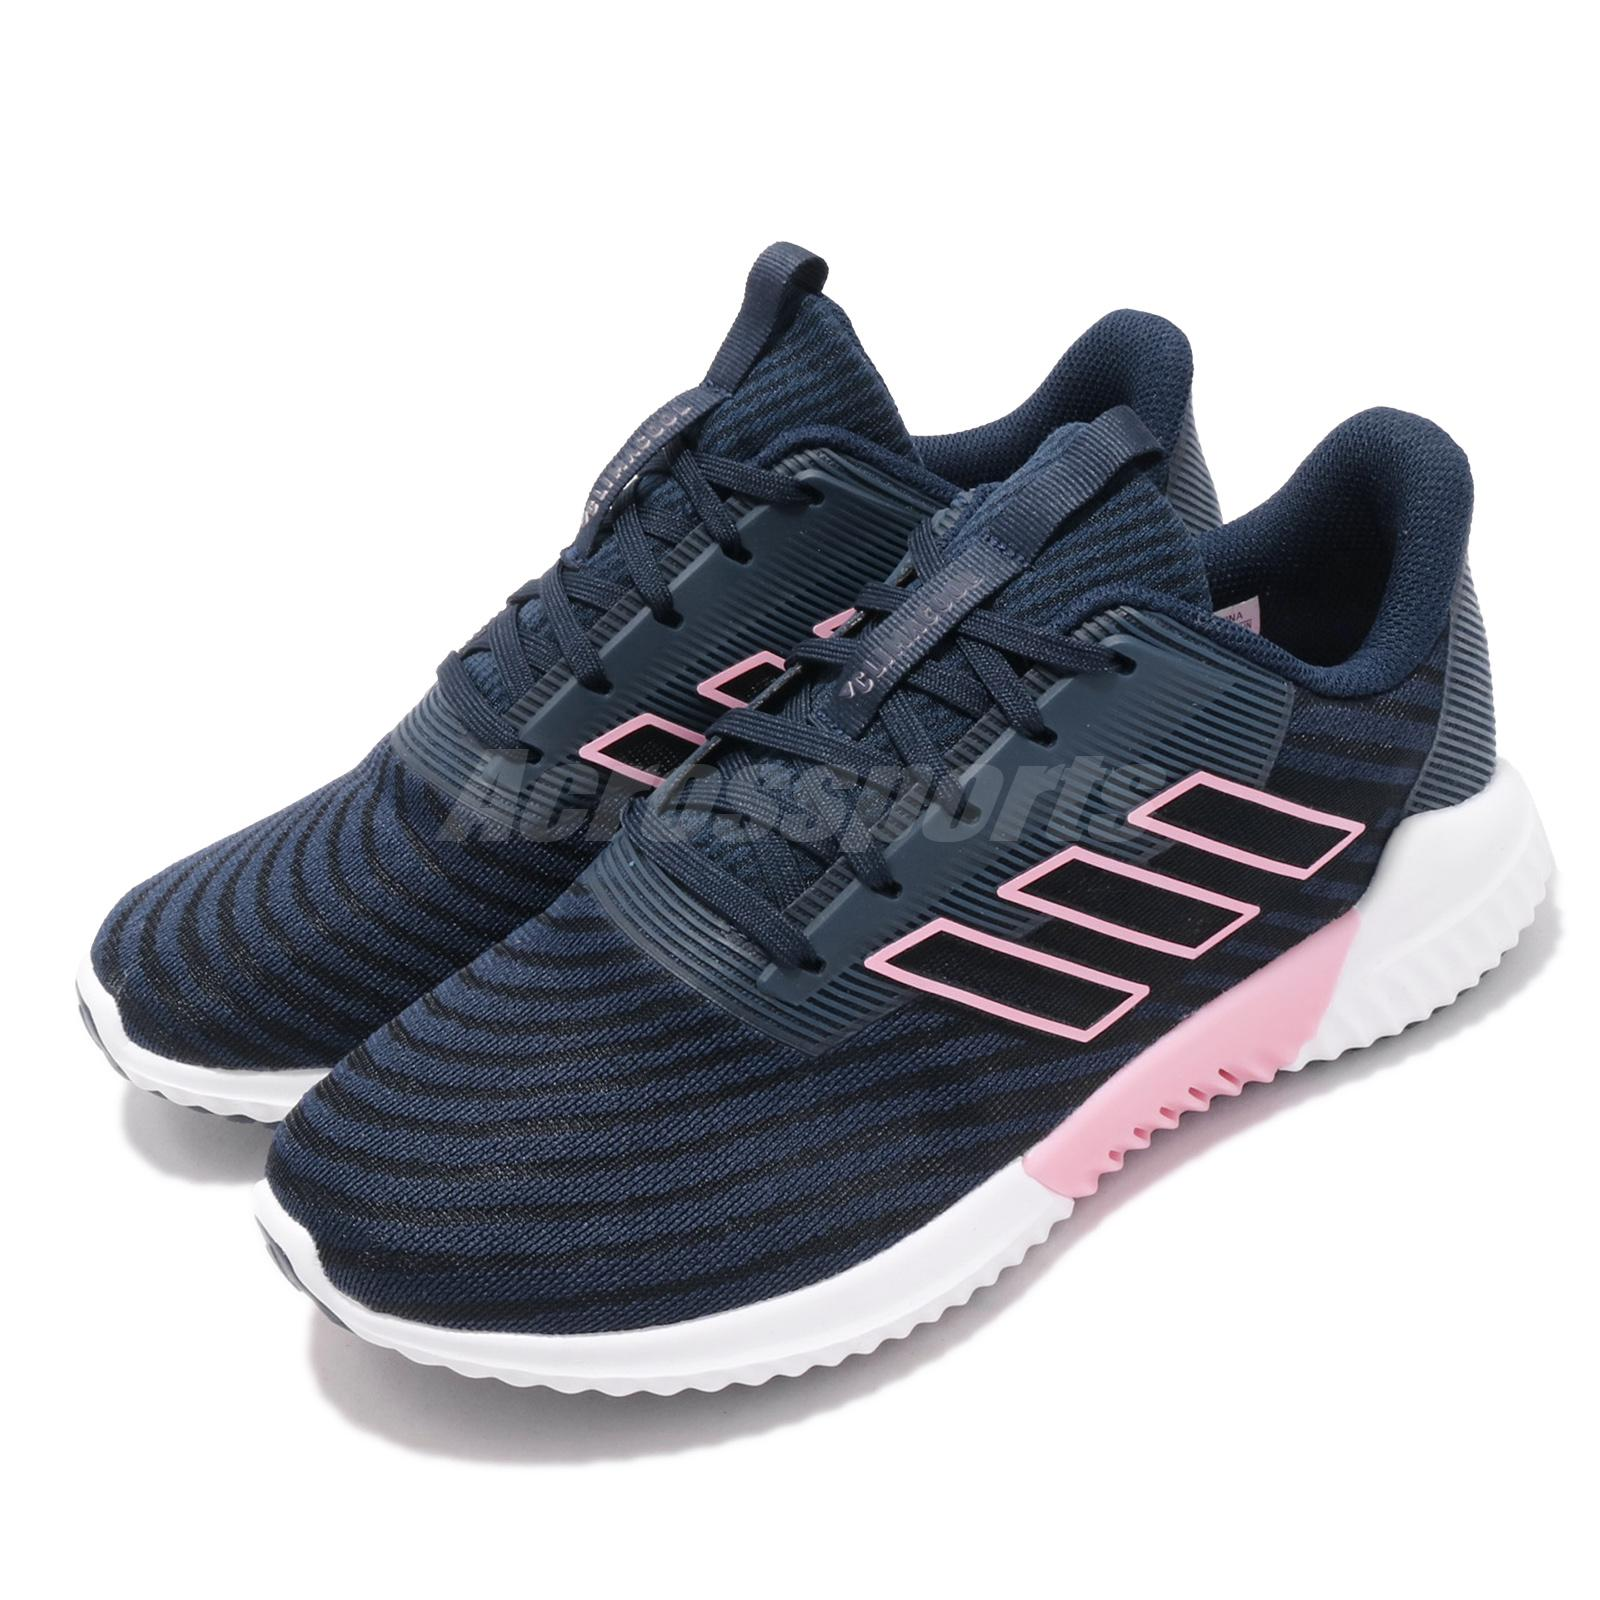 0 Climacool Shoes Sneakers White Women W Pink 2 Adidas Navy Running HxqdUFxw